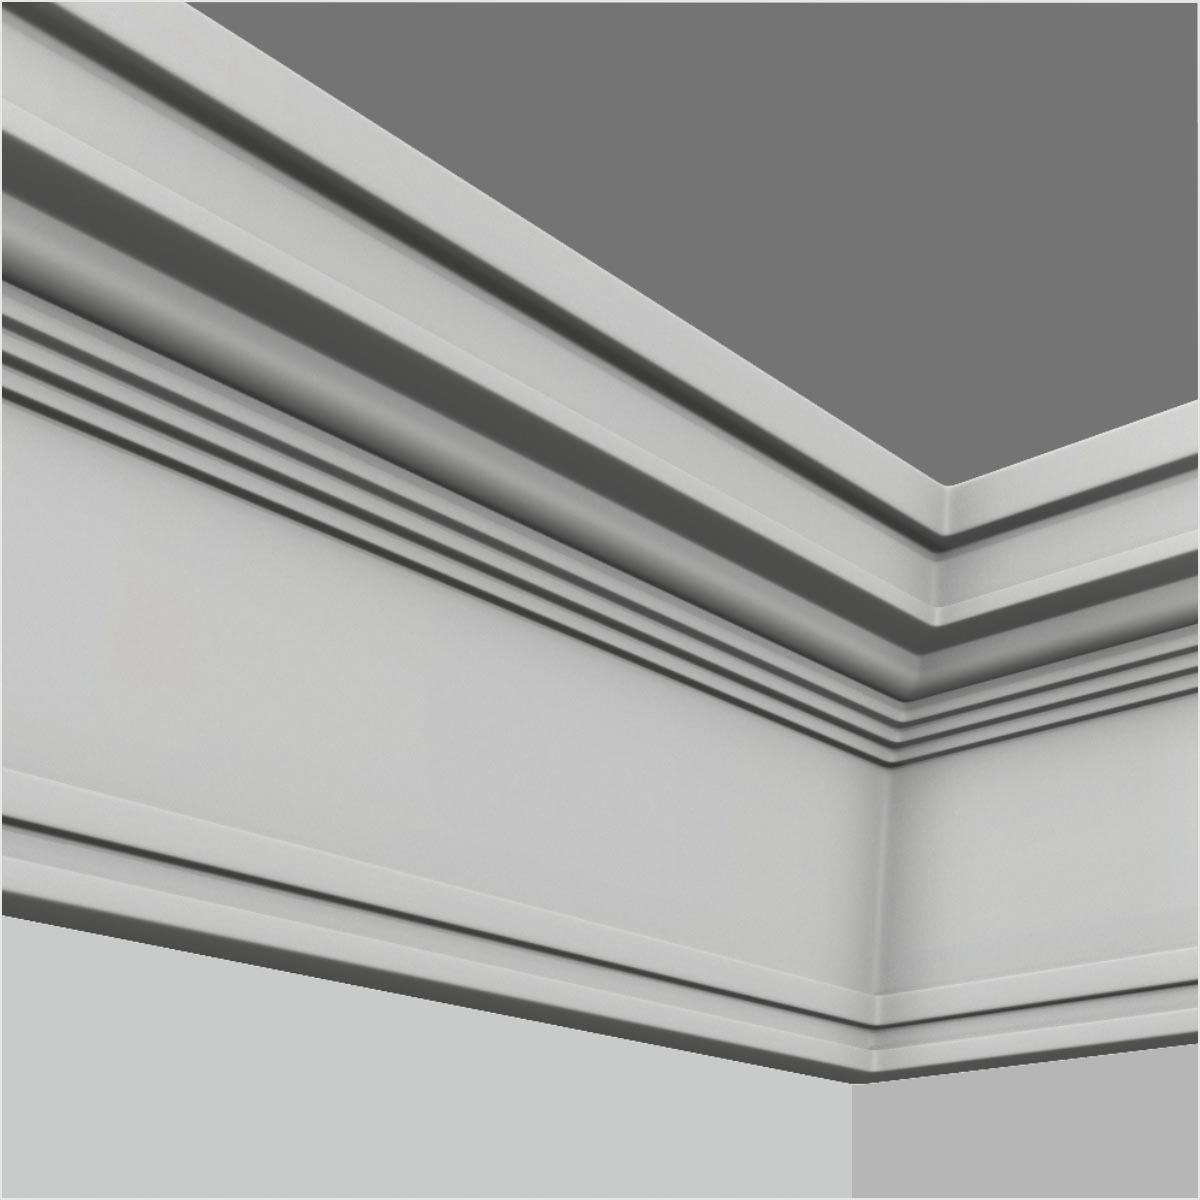 Polyurethane white simple chair rail crown molding